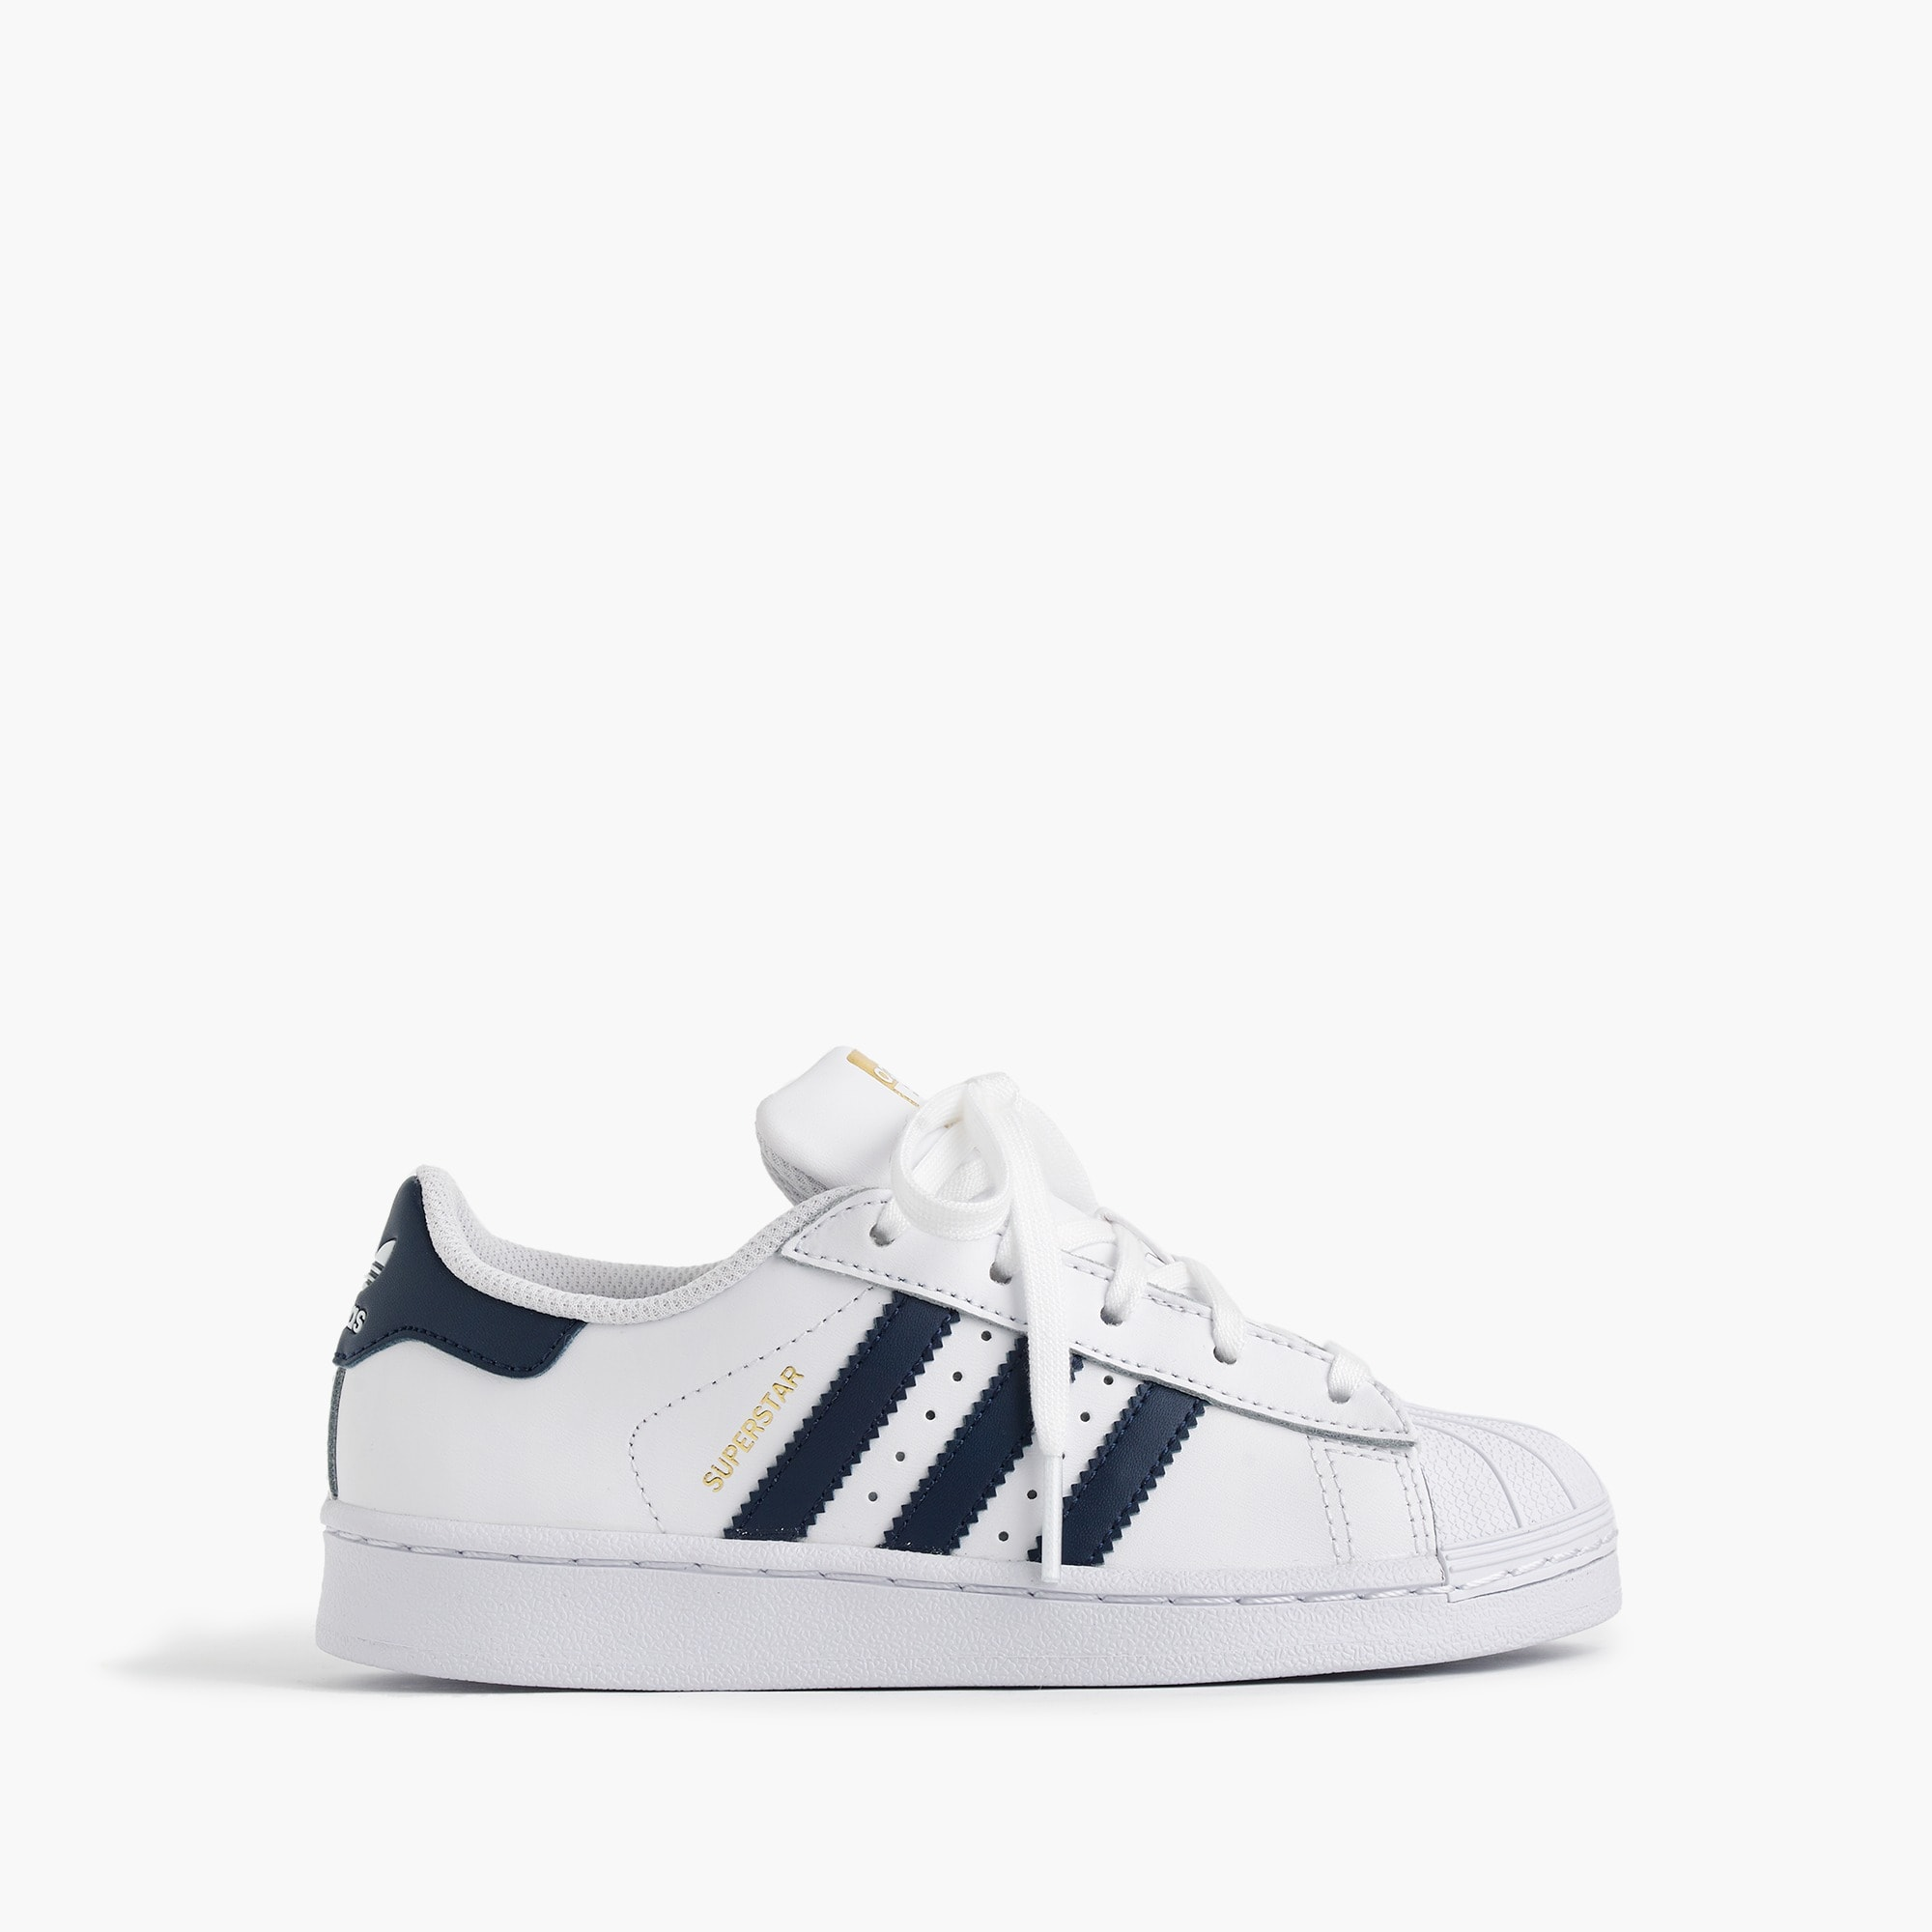 Kids' Adidas® Superstar™ sneakers in larger sizes girl shoes & sneakers c